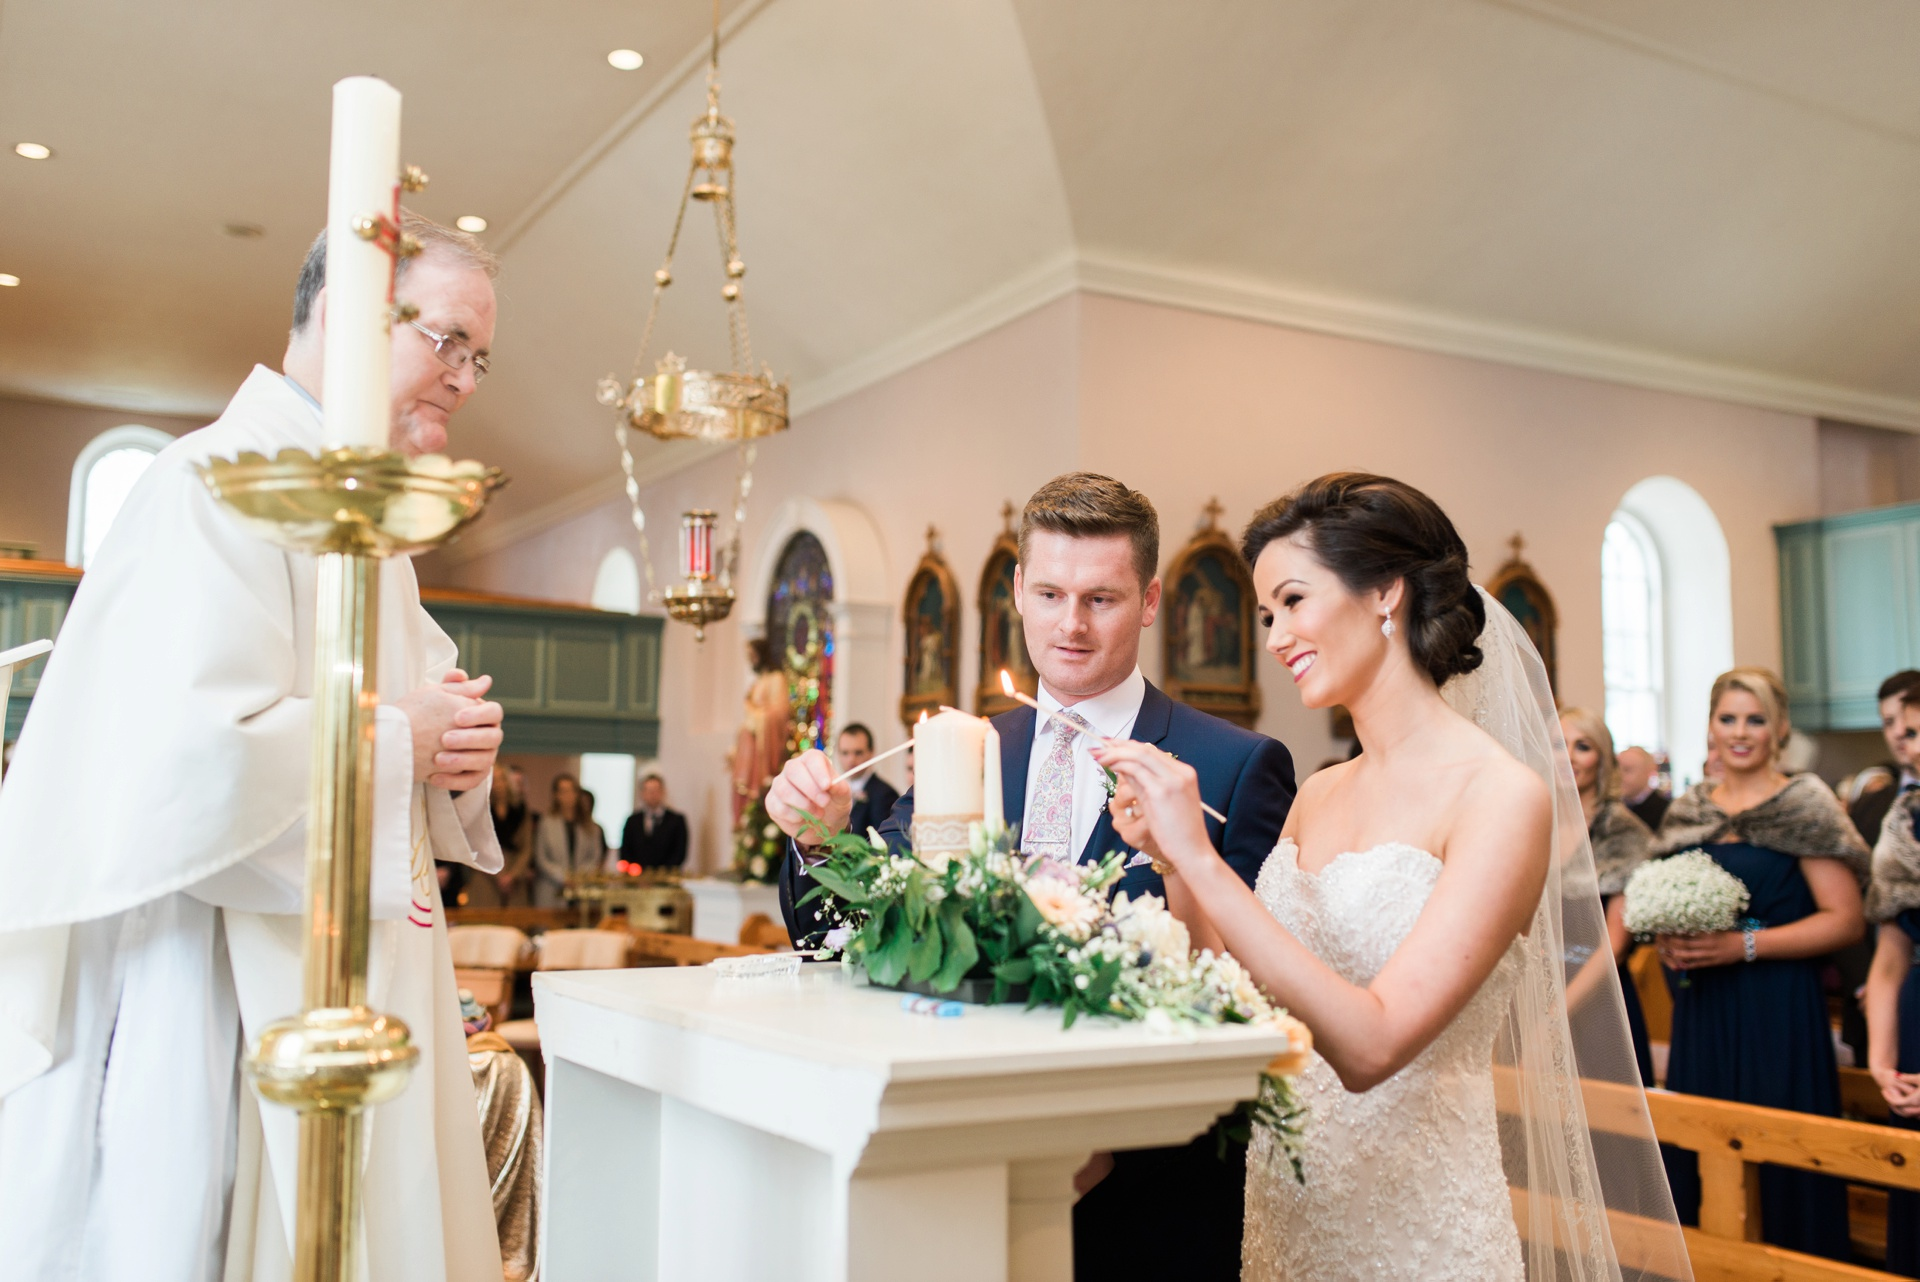 Bride and groom lighting candles in church